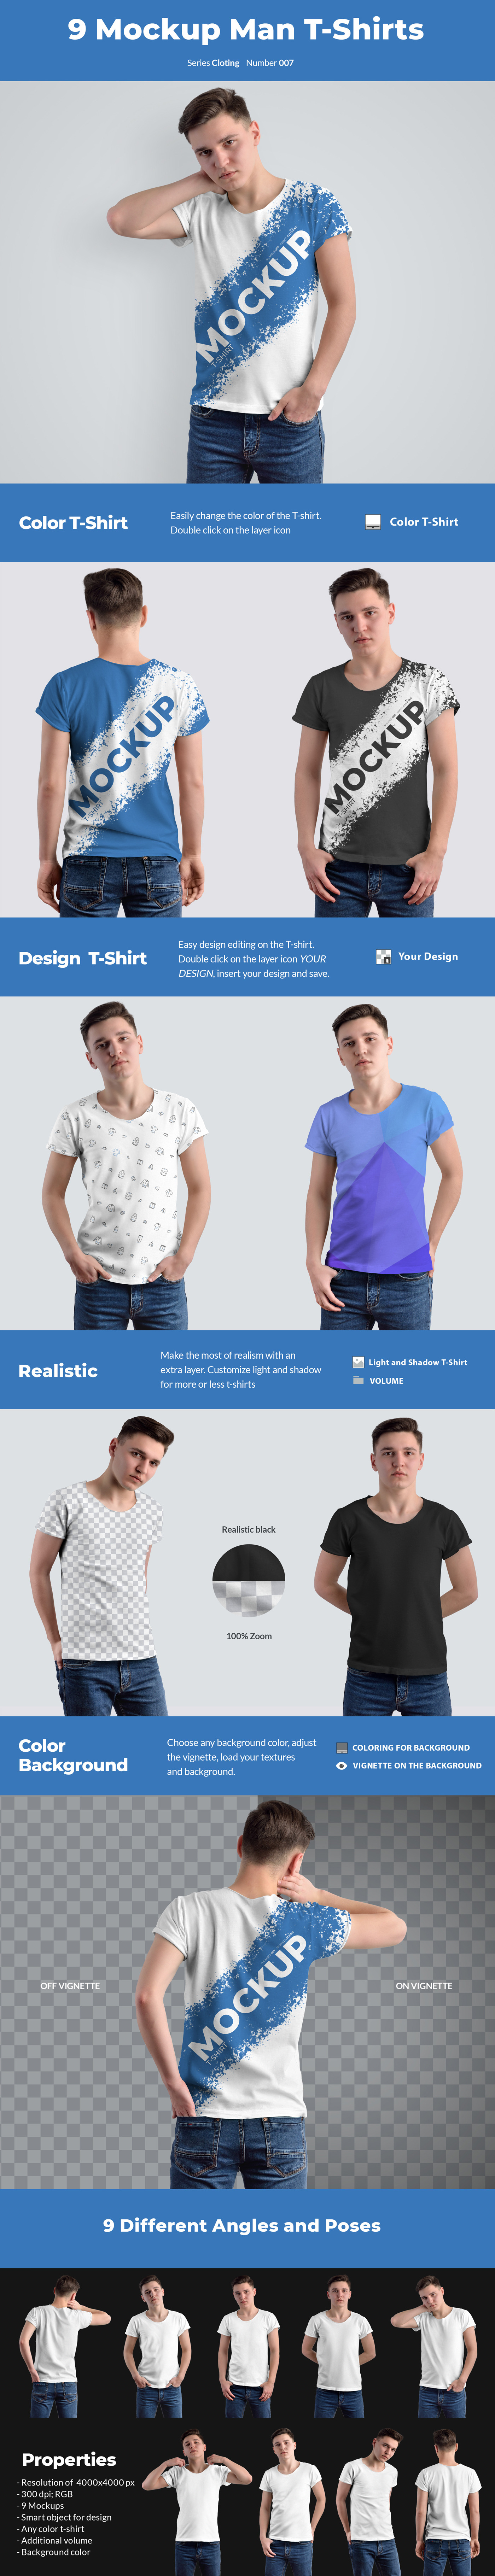 Download 9 Mockups T Shirts On The Men S In Apparel Mockups On Yellow Images Creative Store PSD Mockup Templates